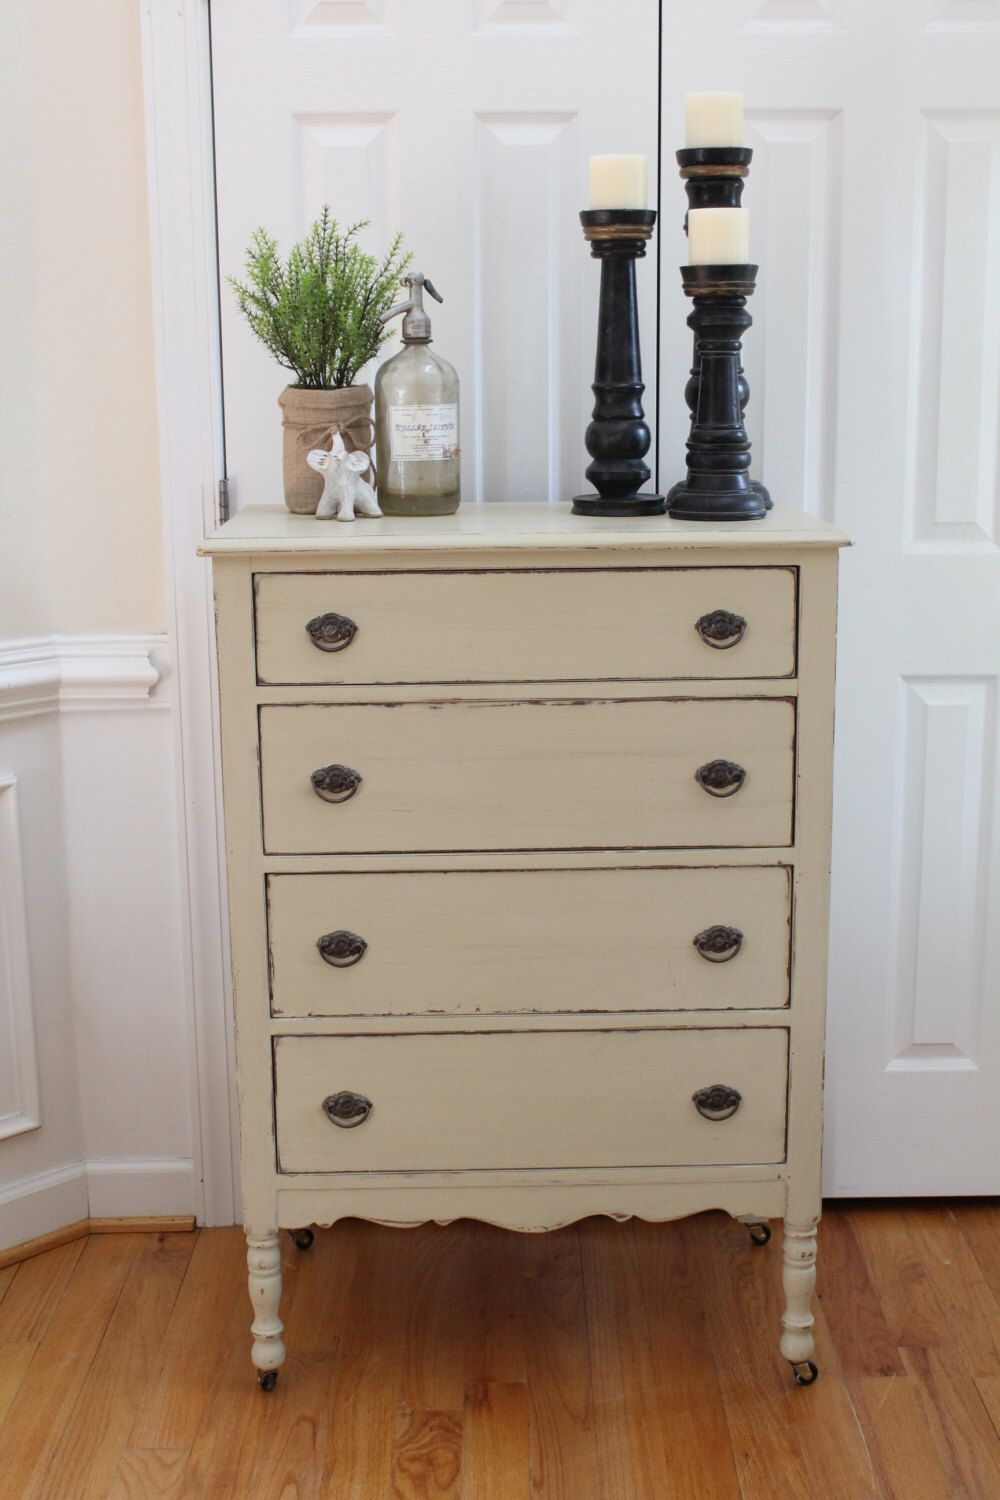 Vintage Chest Of Drawers Annie Sloan Chalk Paint Country Grey Dresser Bedroom By